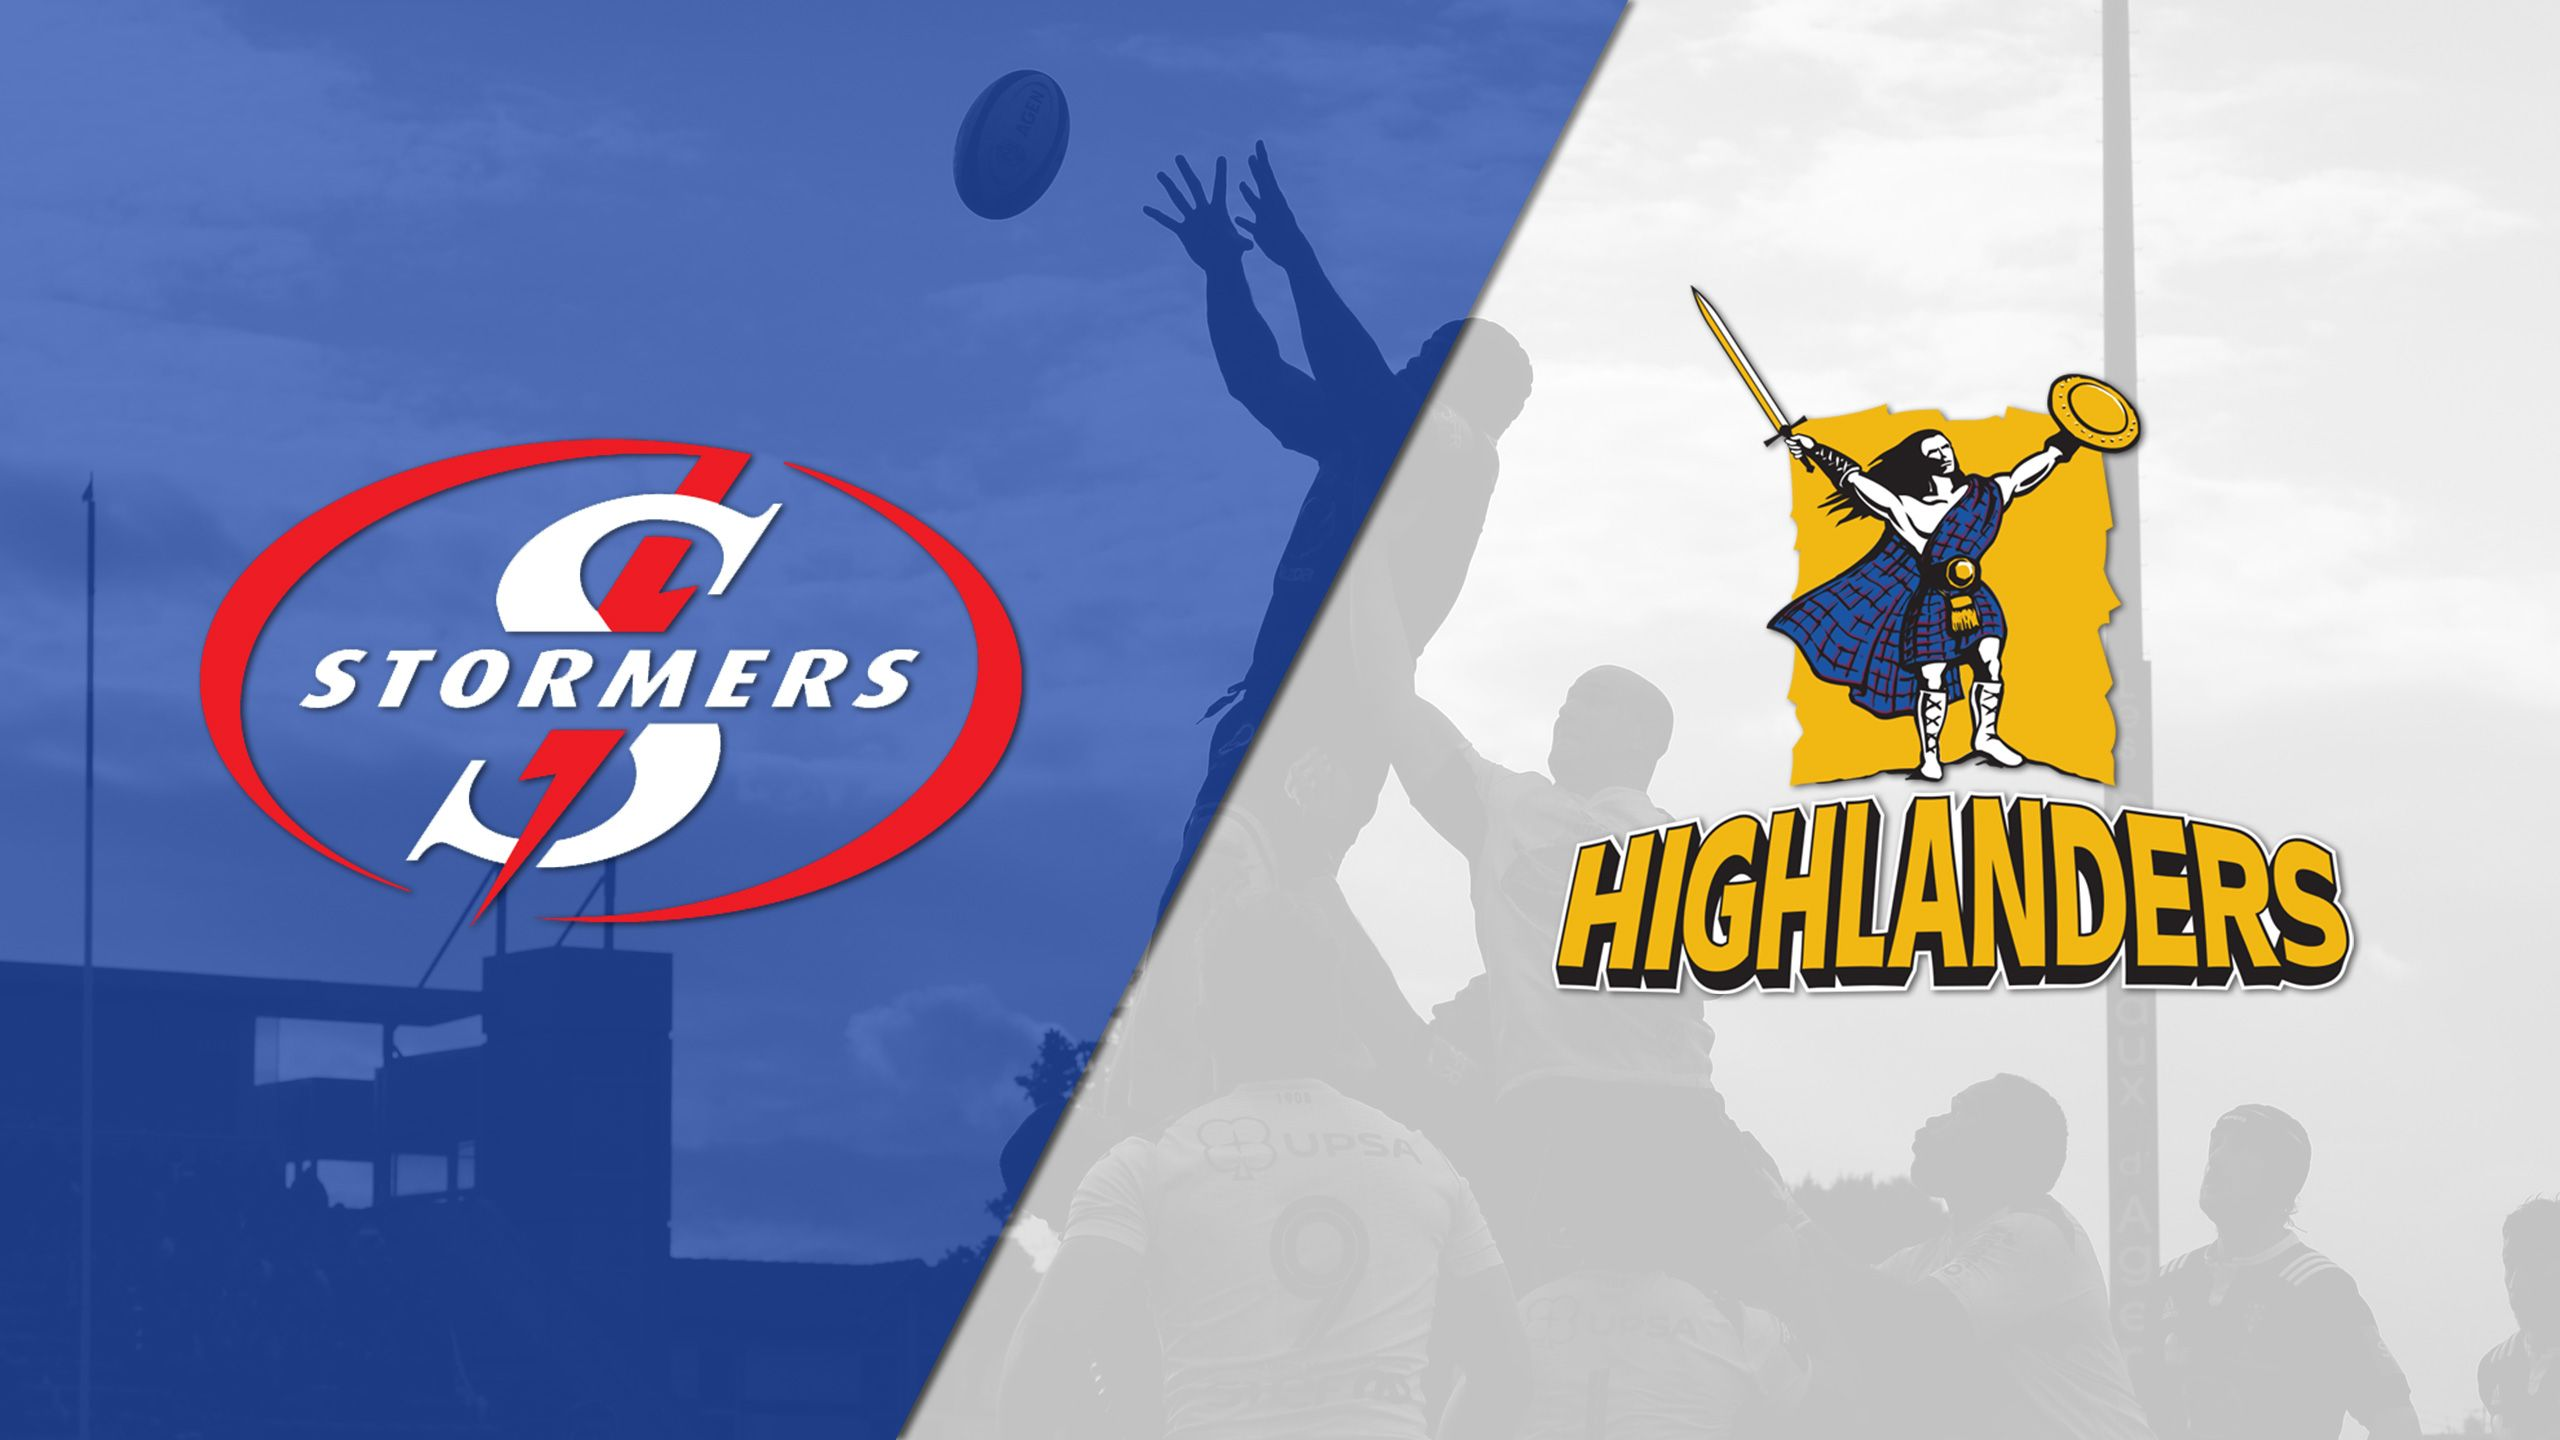 Stormers vs. Highlanders (Super Rugby)